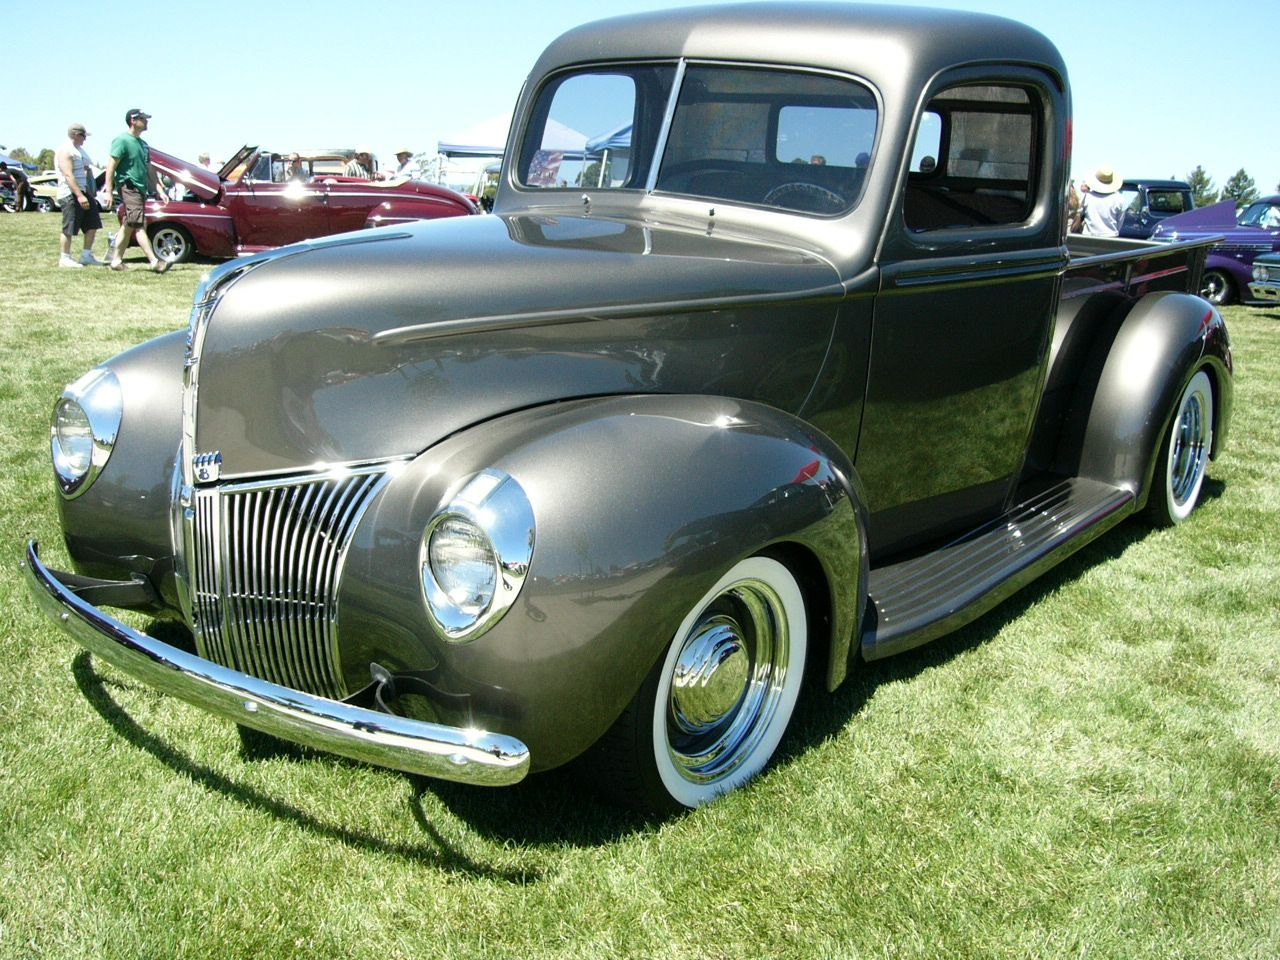 Ford Pickup 1940 Ford V8 Pickup In Gray By Roadtripdog On